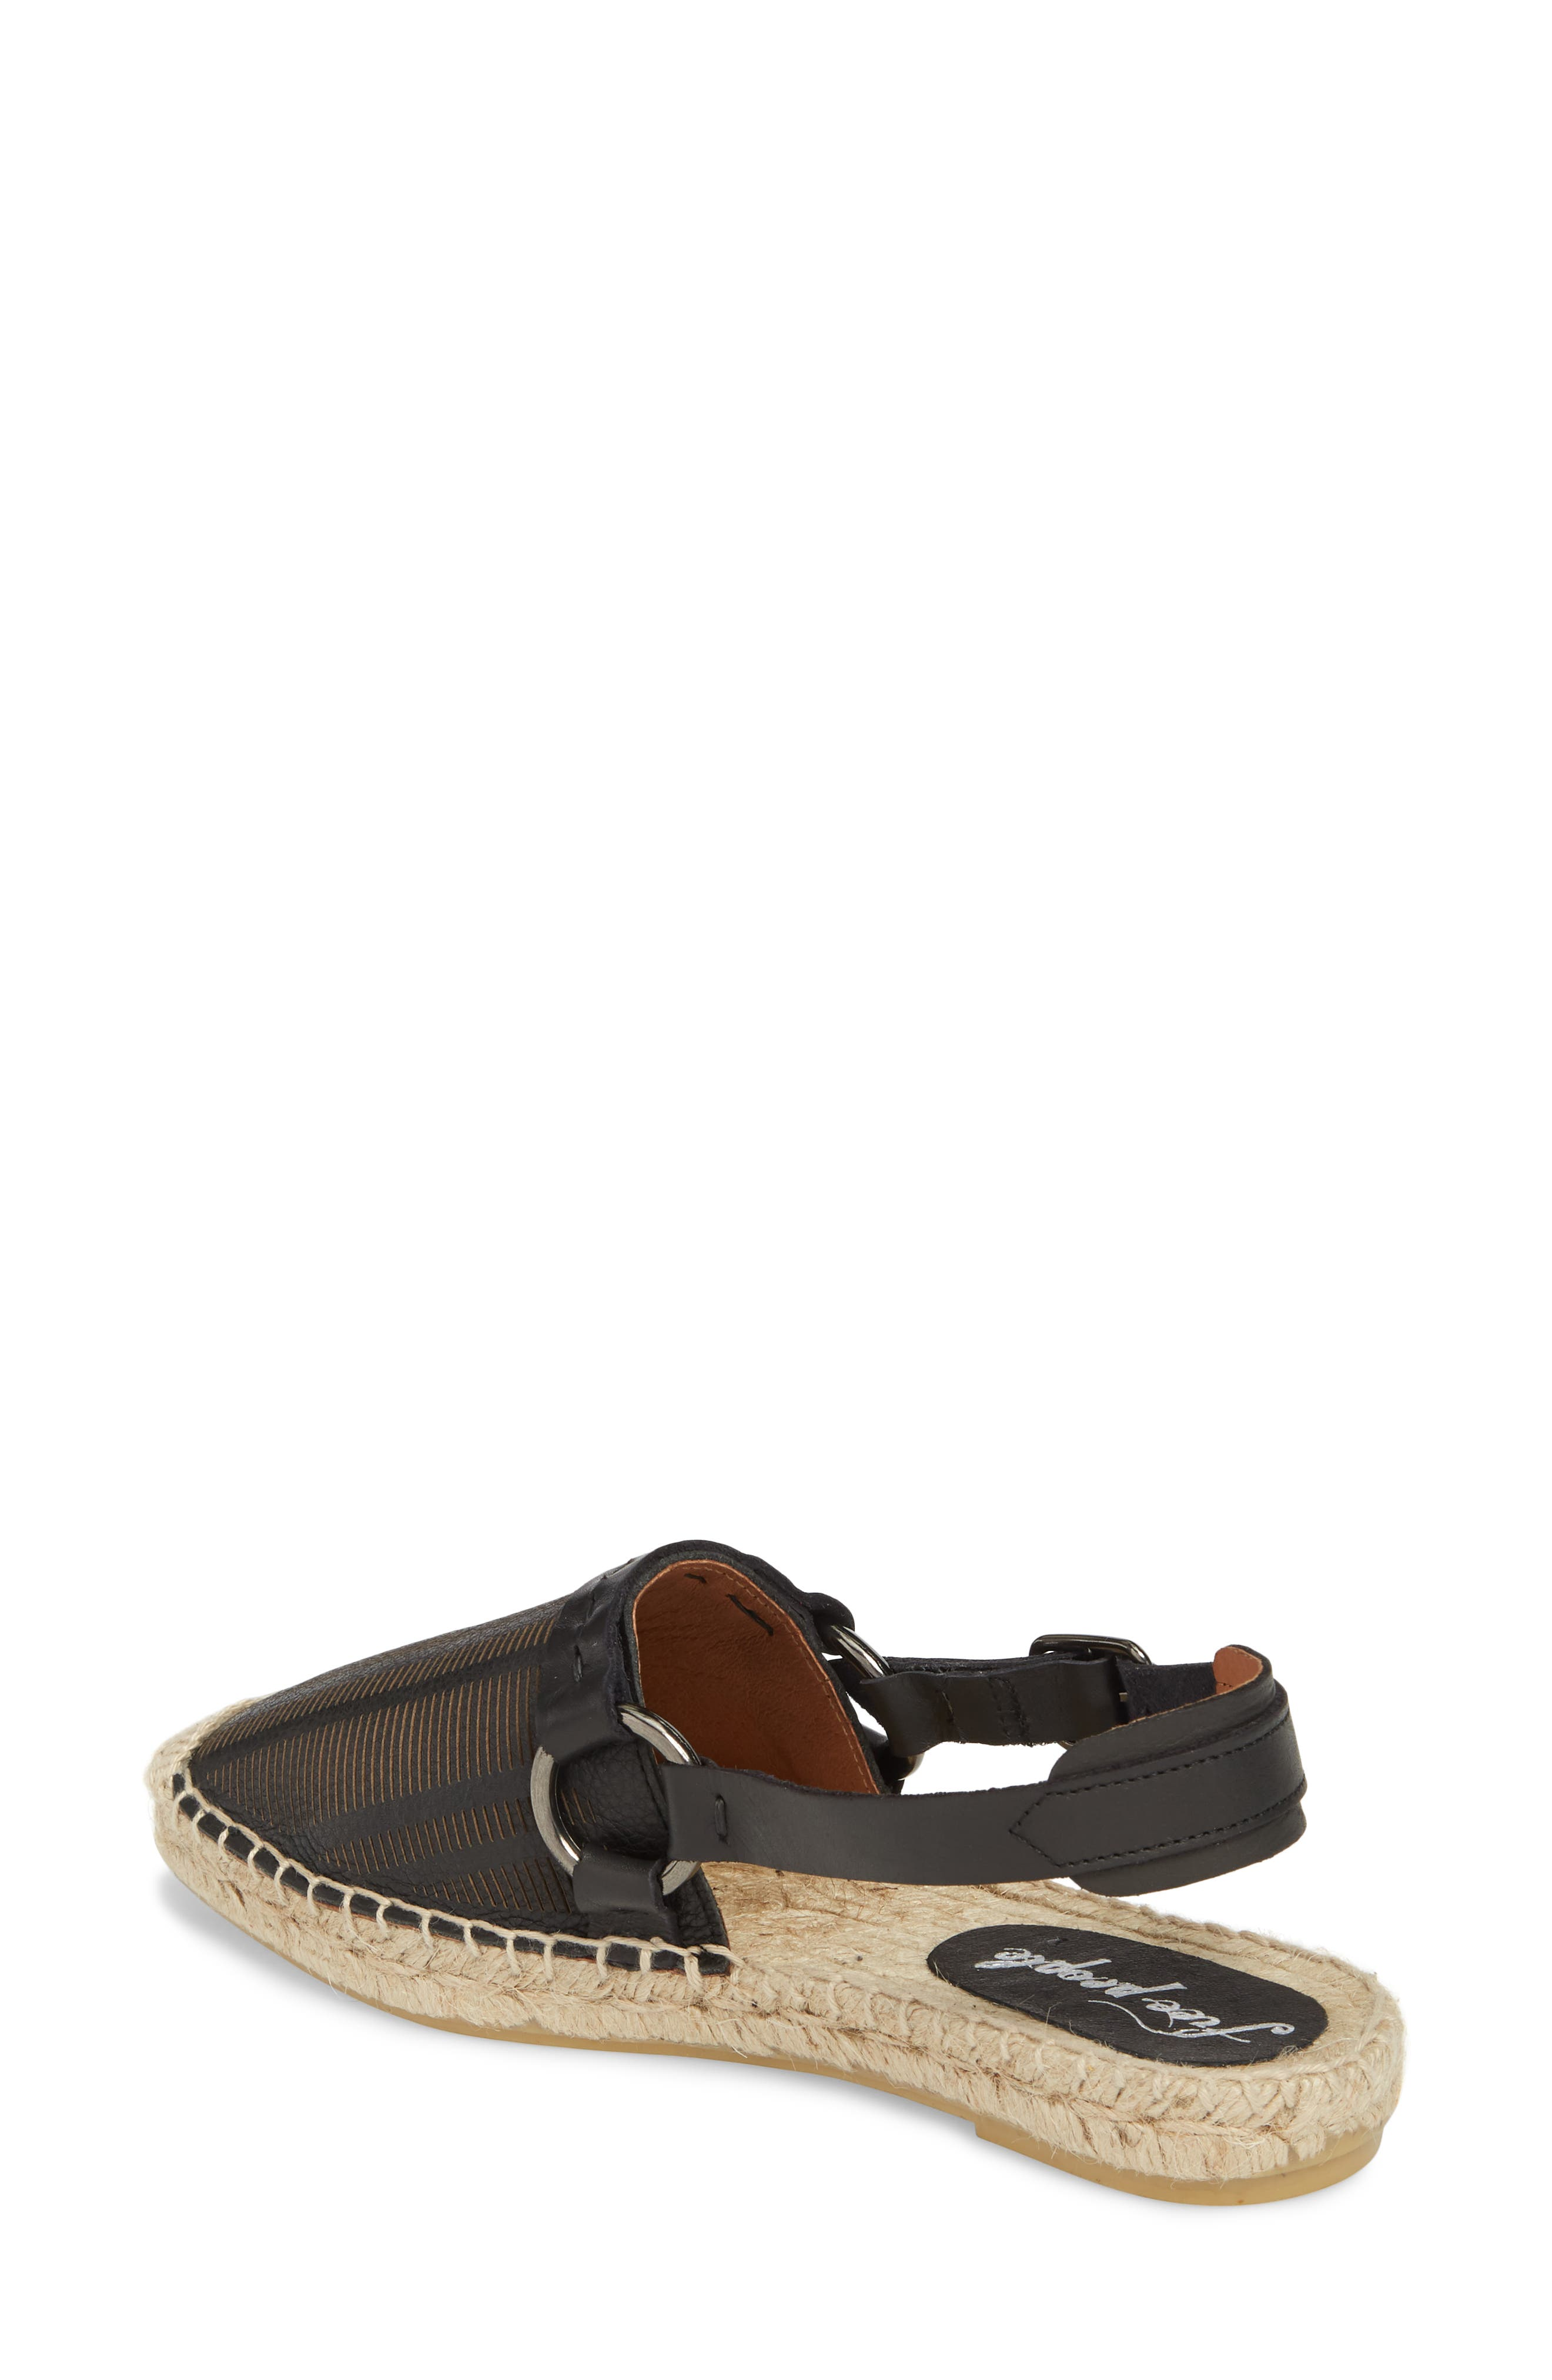 FREE PEOPLE,                             Cabo Espadrille Flat,                             Alternate thumbnail 2, color,                             001